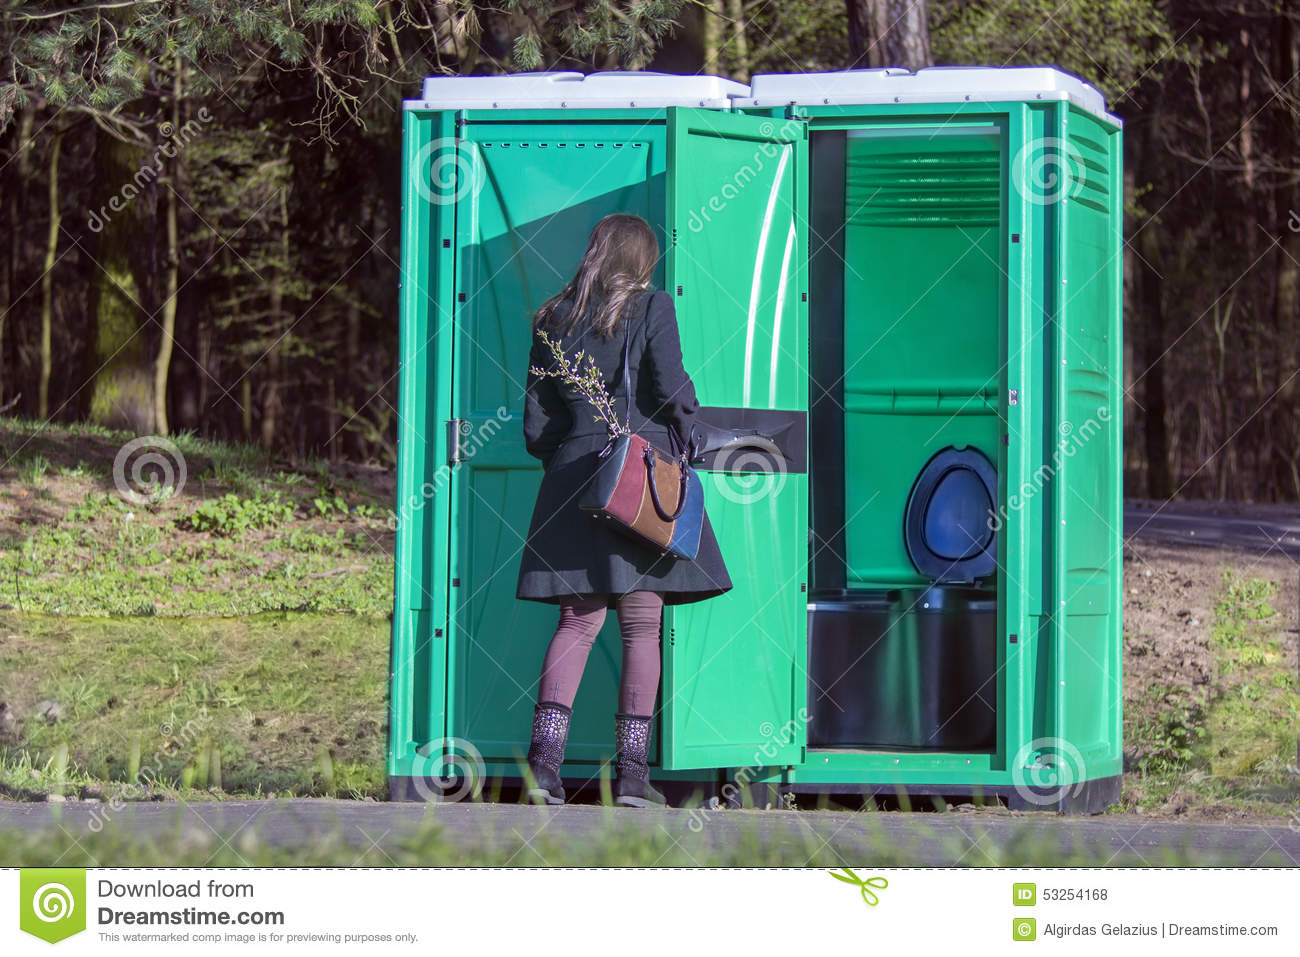 American Portable Toilets